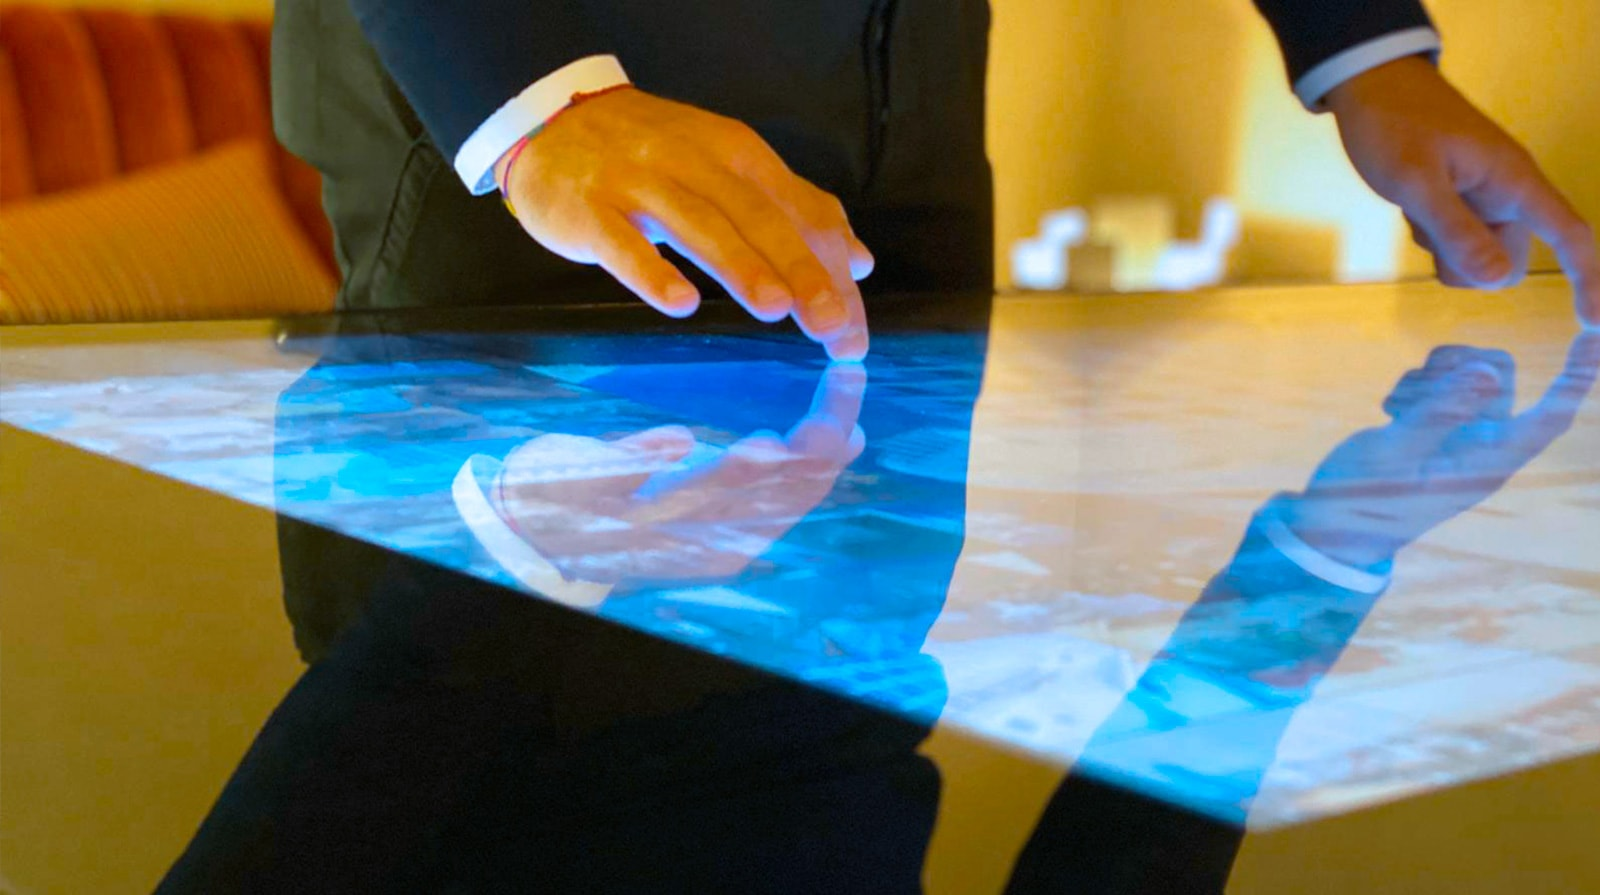 D-Table Luxury Multitouch Table